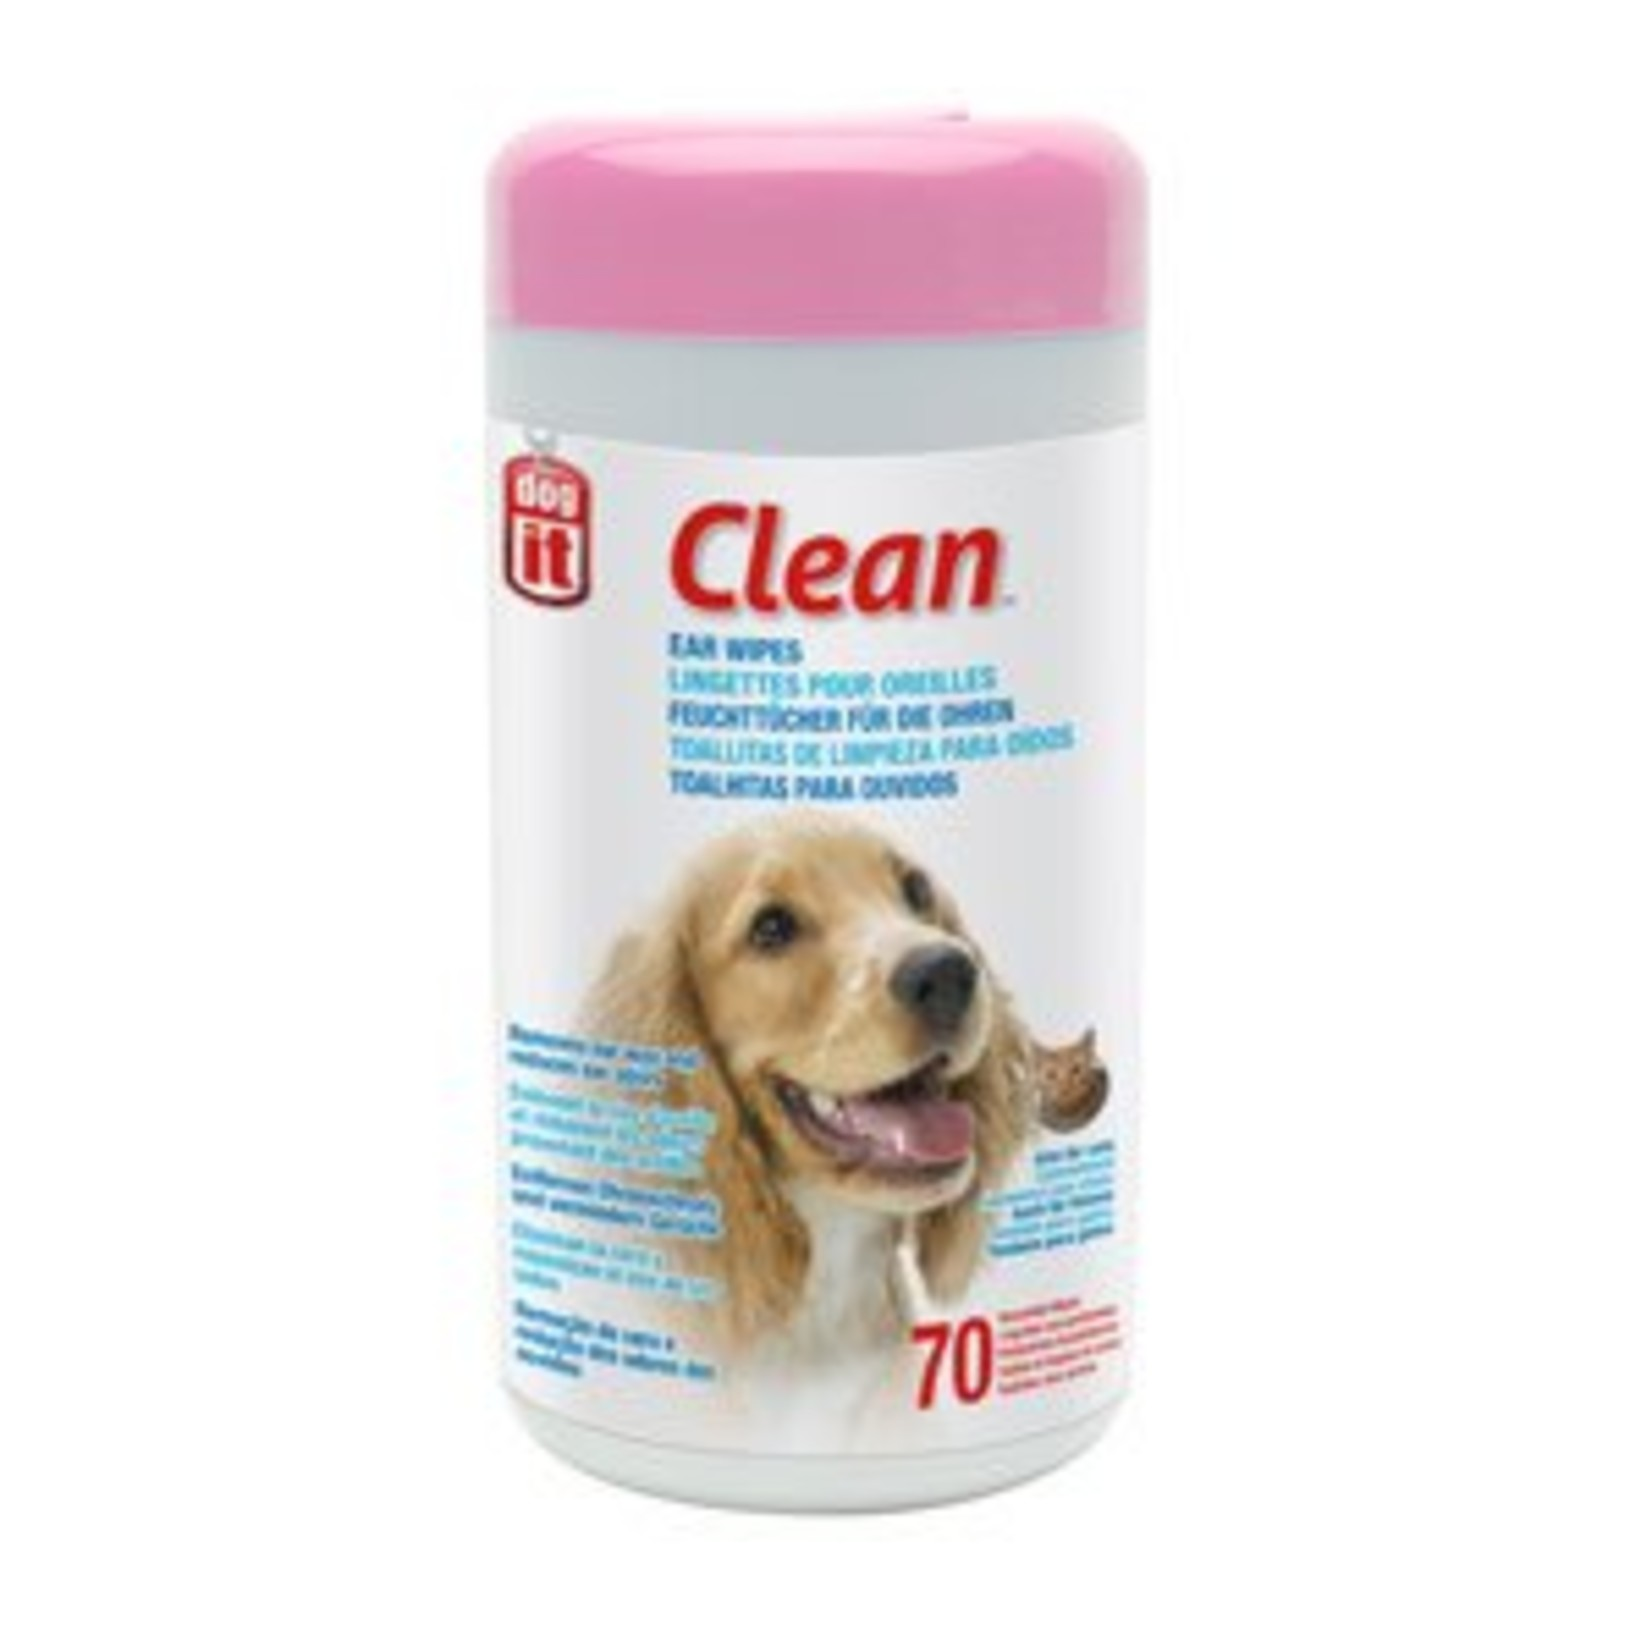 Dogit Clean Ear Wipes, Unscented, 70pcs